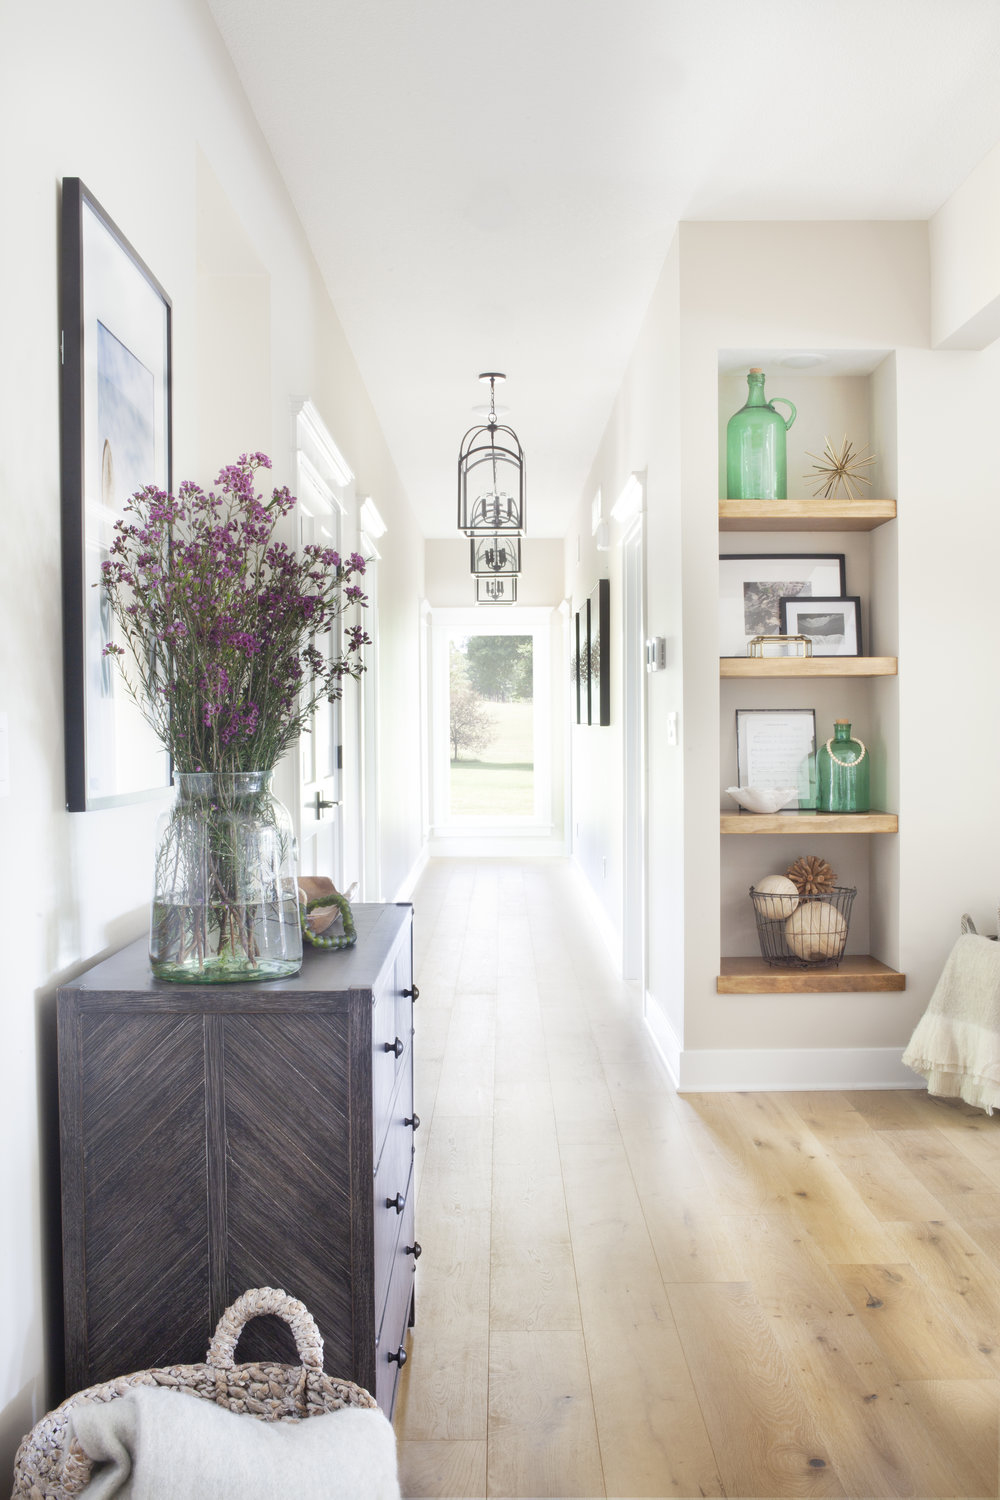 We loved seeing the transformation of our  #SNLakeview  project over time, especially how this entryway went from dark to beautifully light and airy. If you missed Part I of the full reveal, check out our latest blog post. 📷:  @humans.spaces